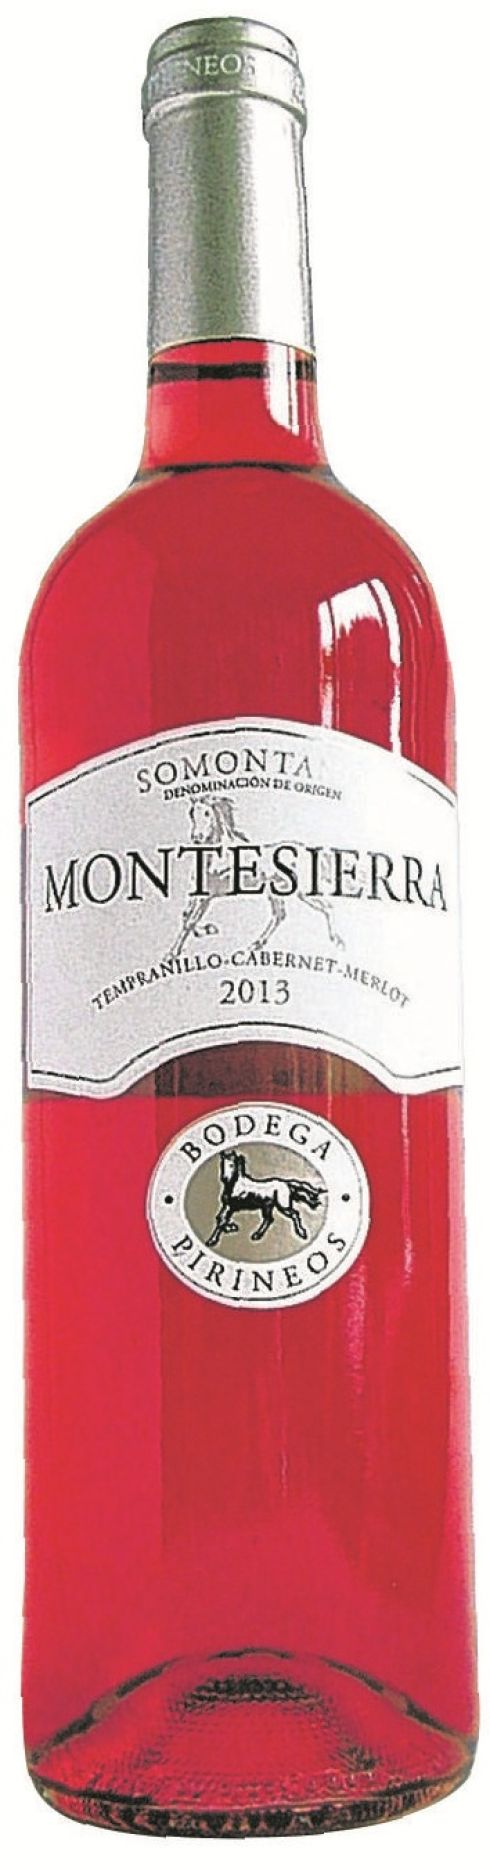 Montesierra wine